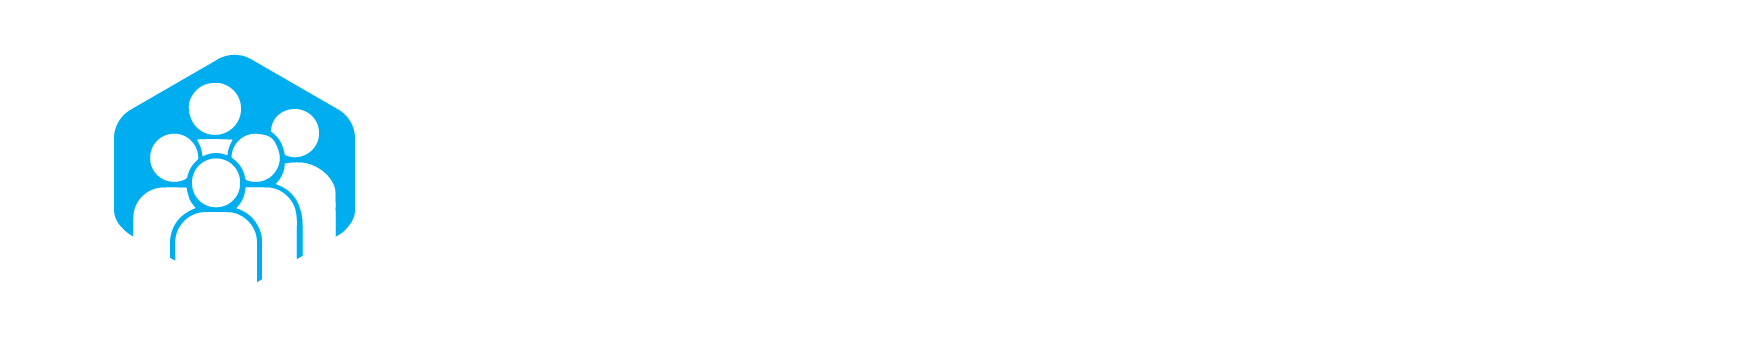 Leigh Business Group logo